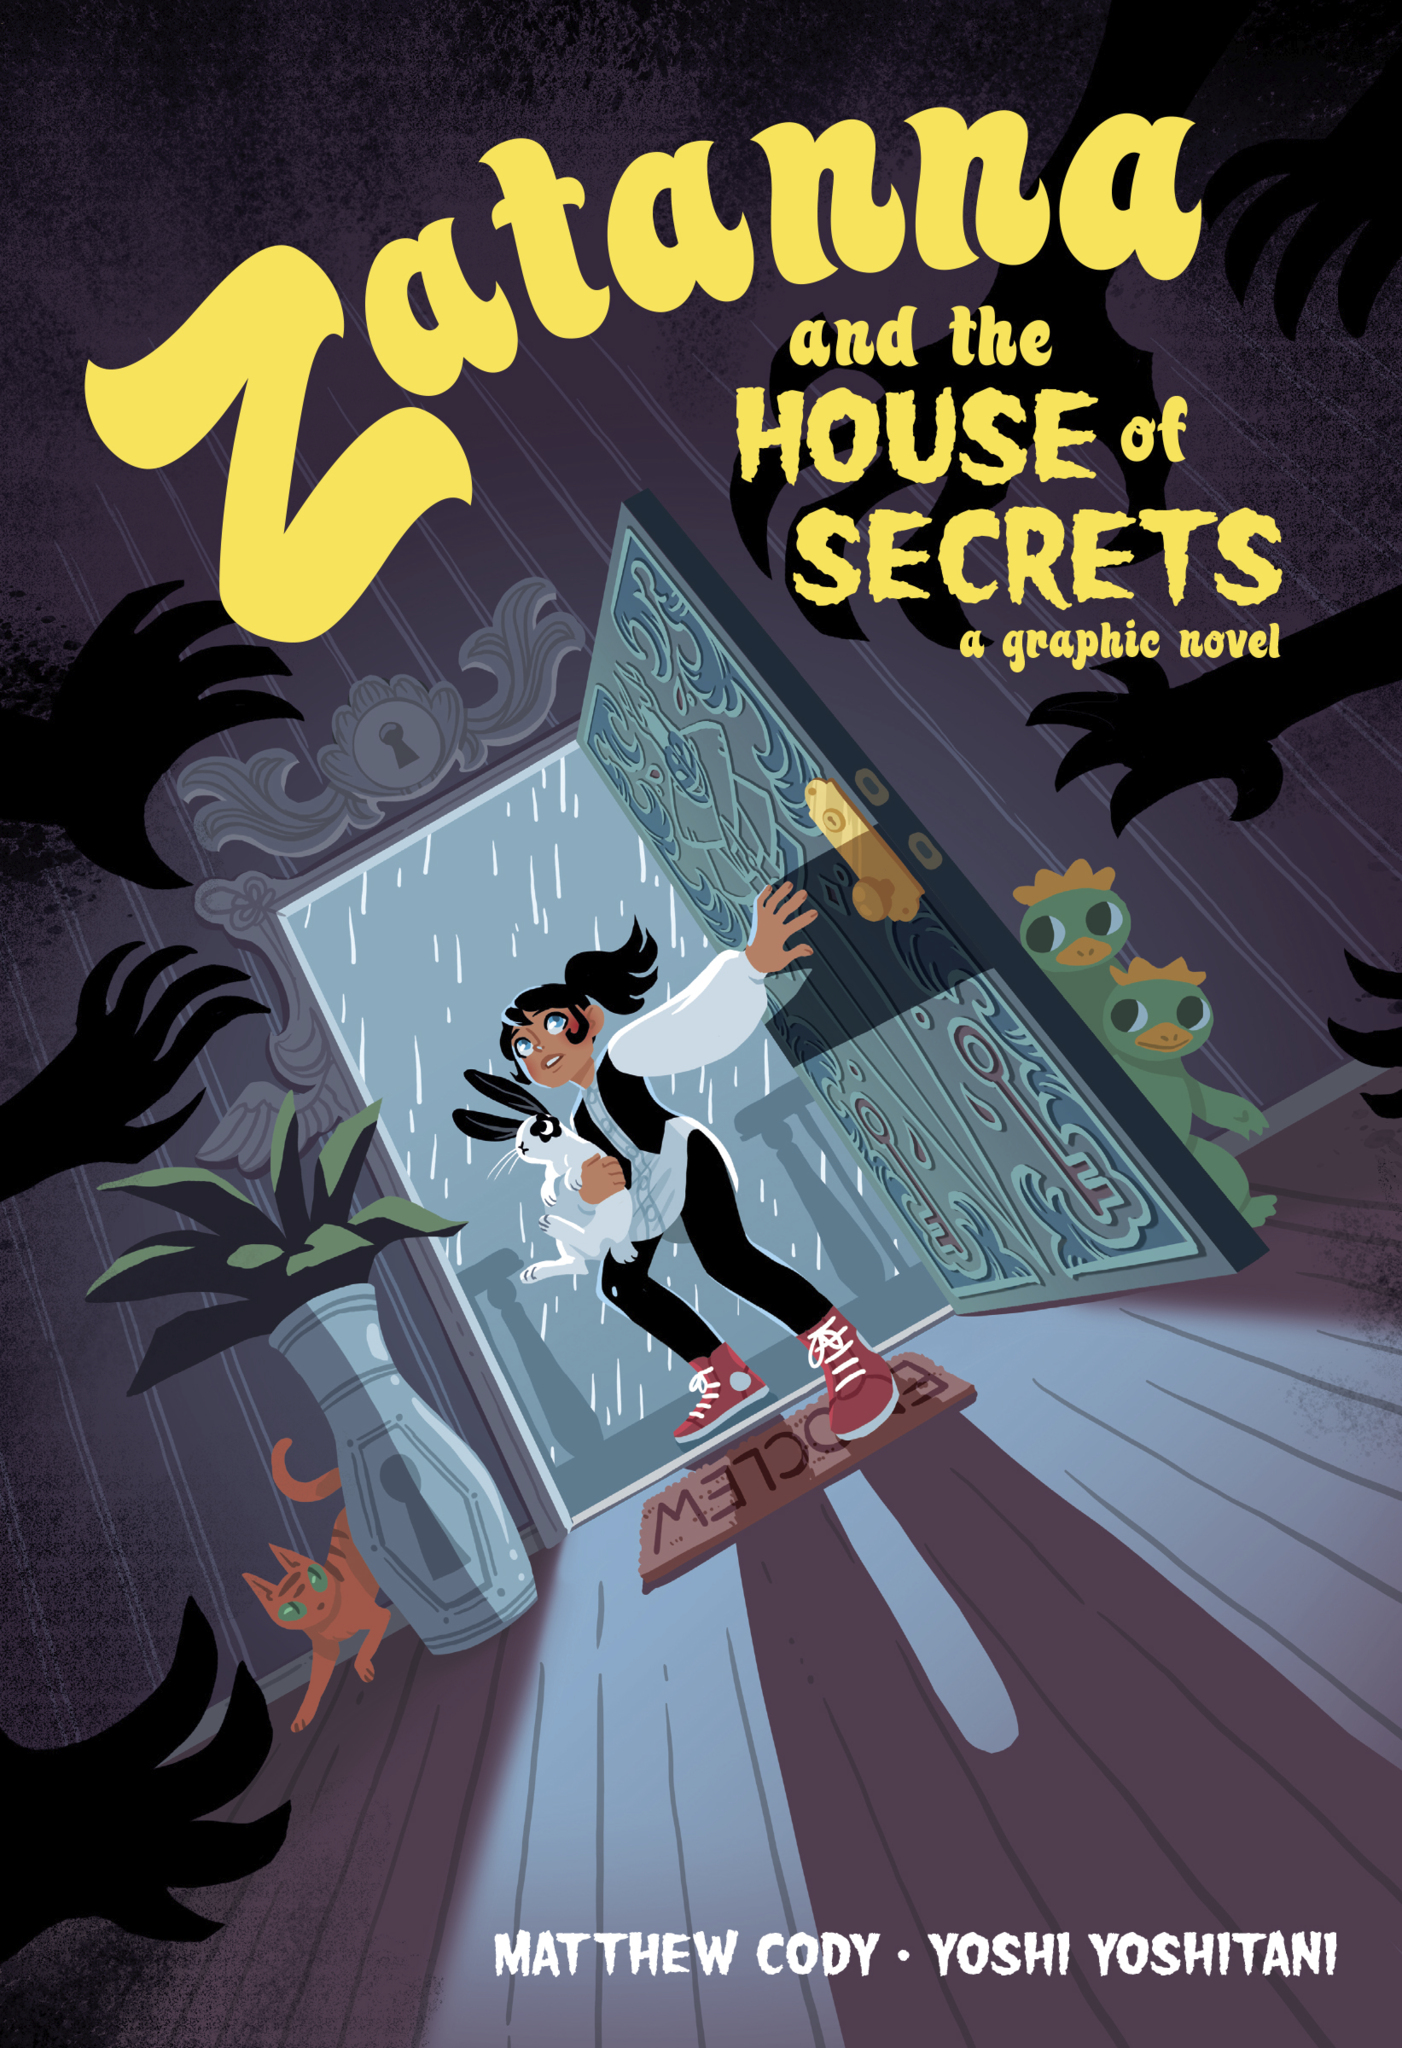 Zatanna and the House of Secrets Interview and Giveaway